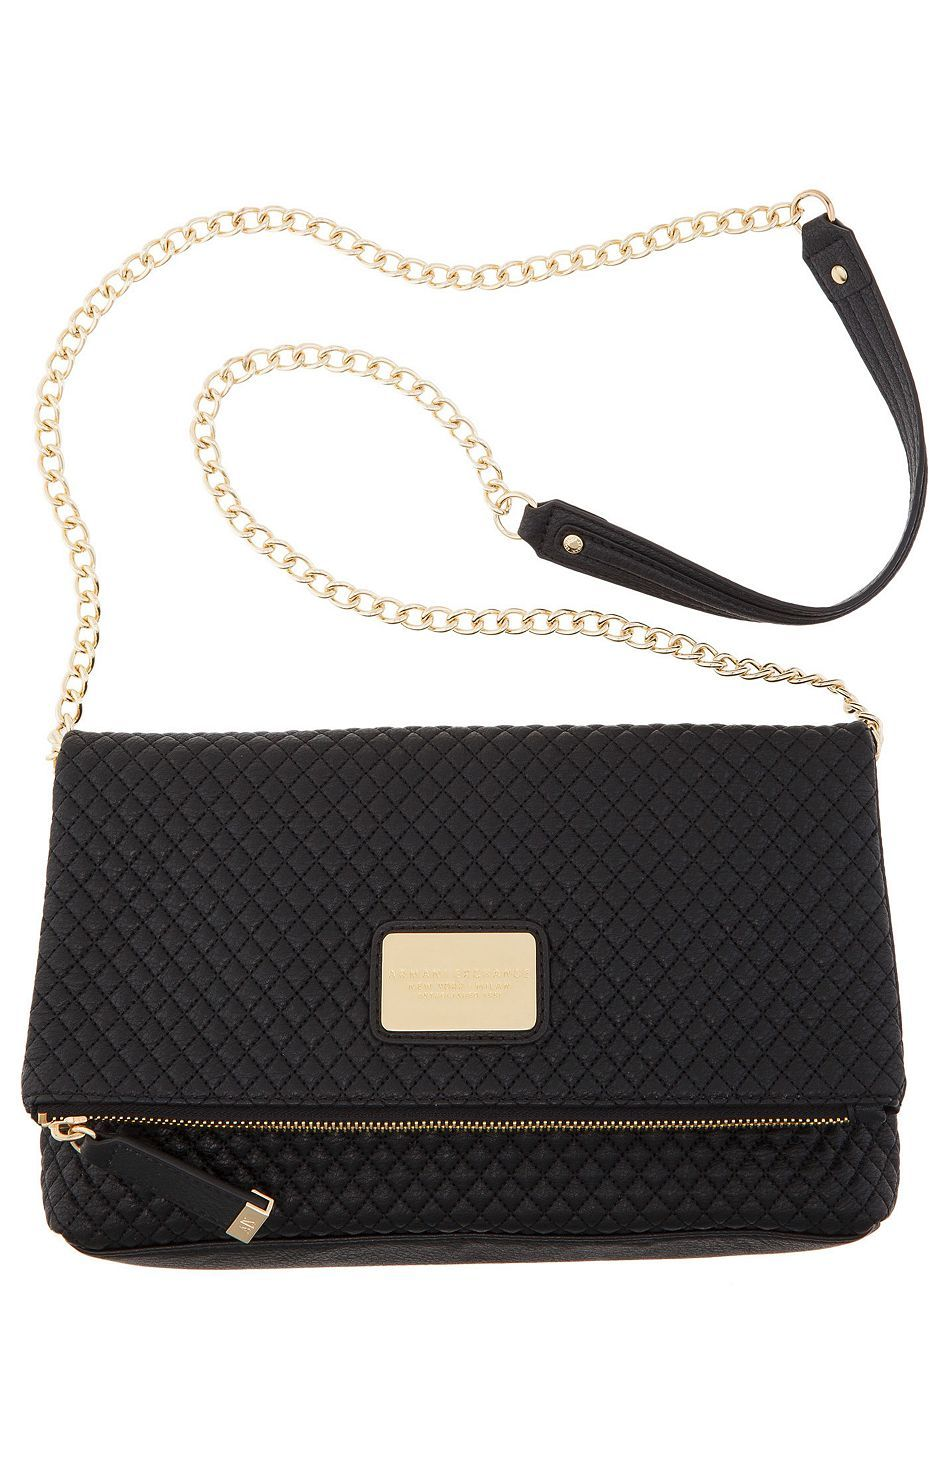 Quilted Foldover Crossbody Bag - Handbags - Womens Accessories - Armani  Exchange a405fa85ba869